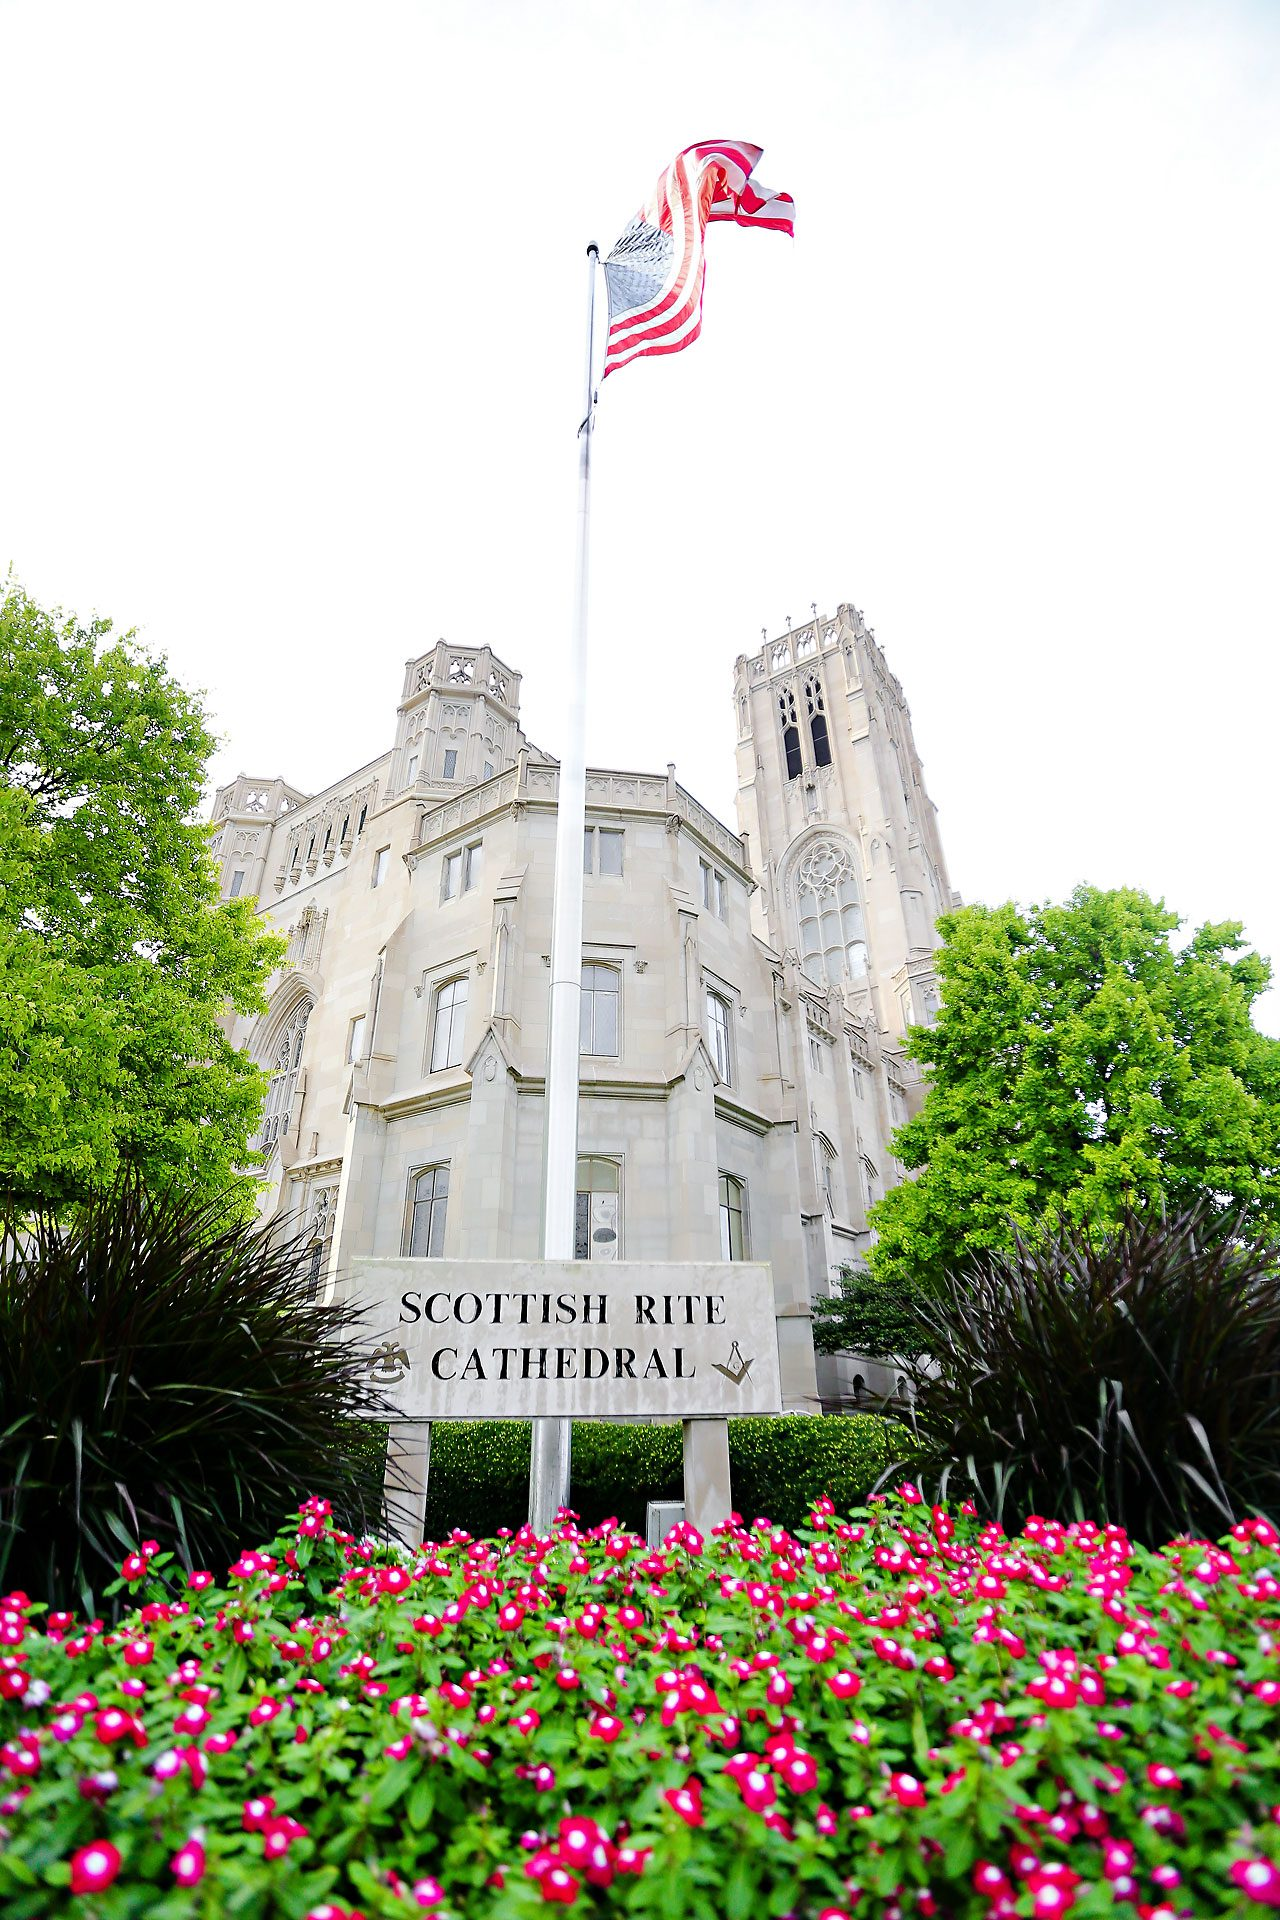 230 katherine austin scottish rite indianapolis wedding